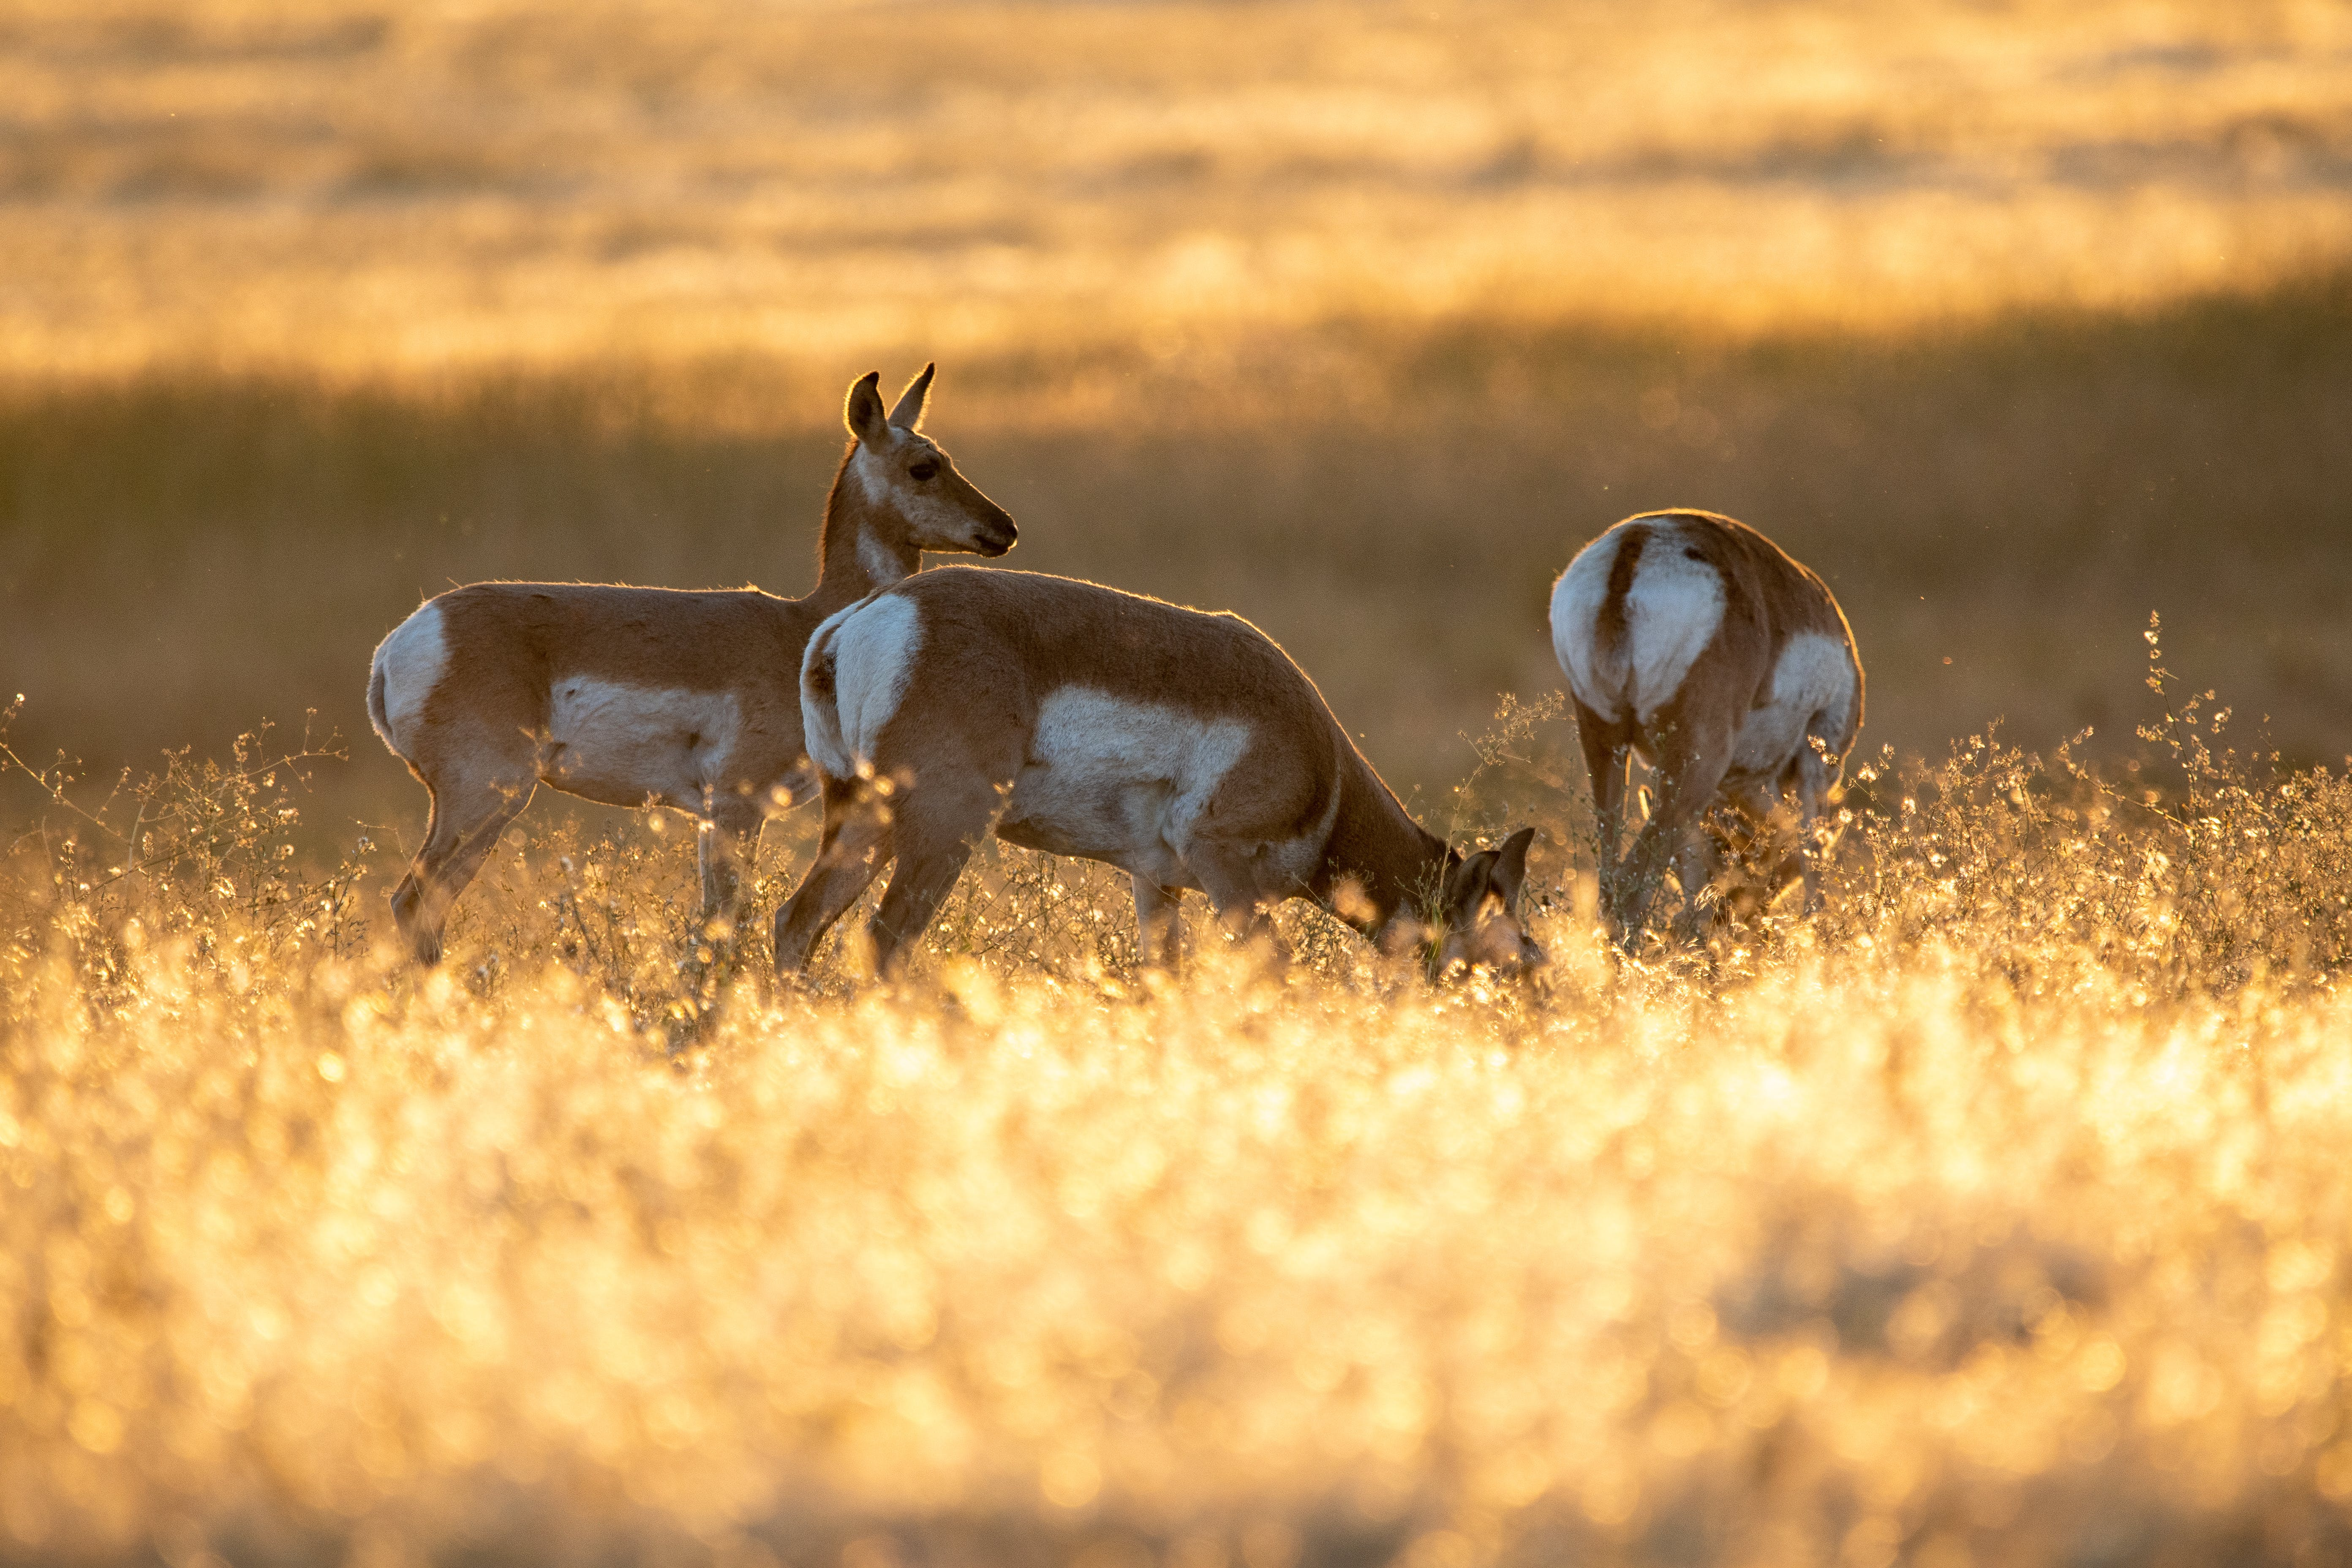 Three Brown-and-white Deer Grazing on Field